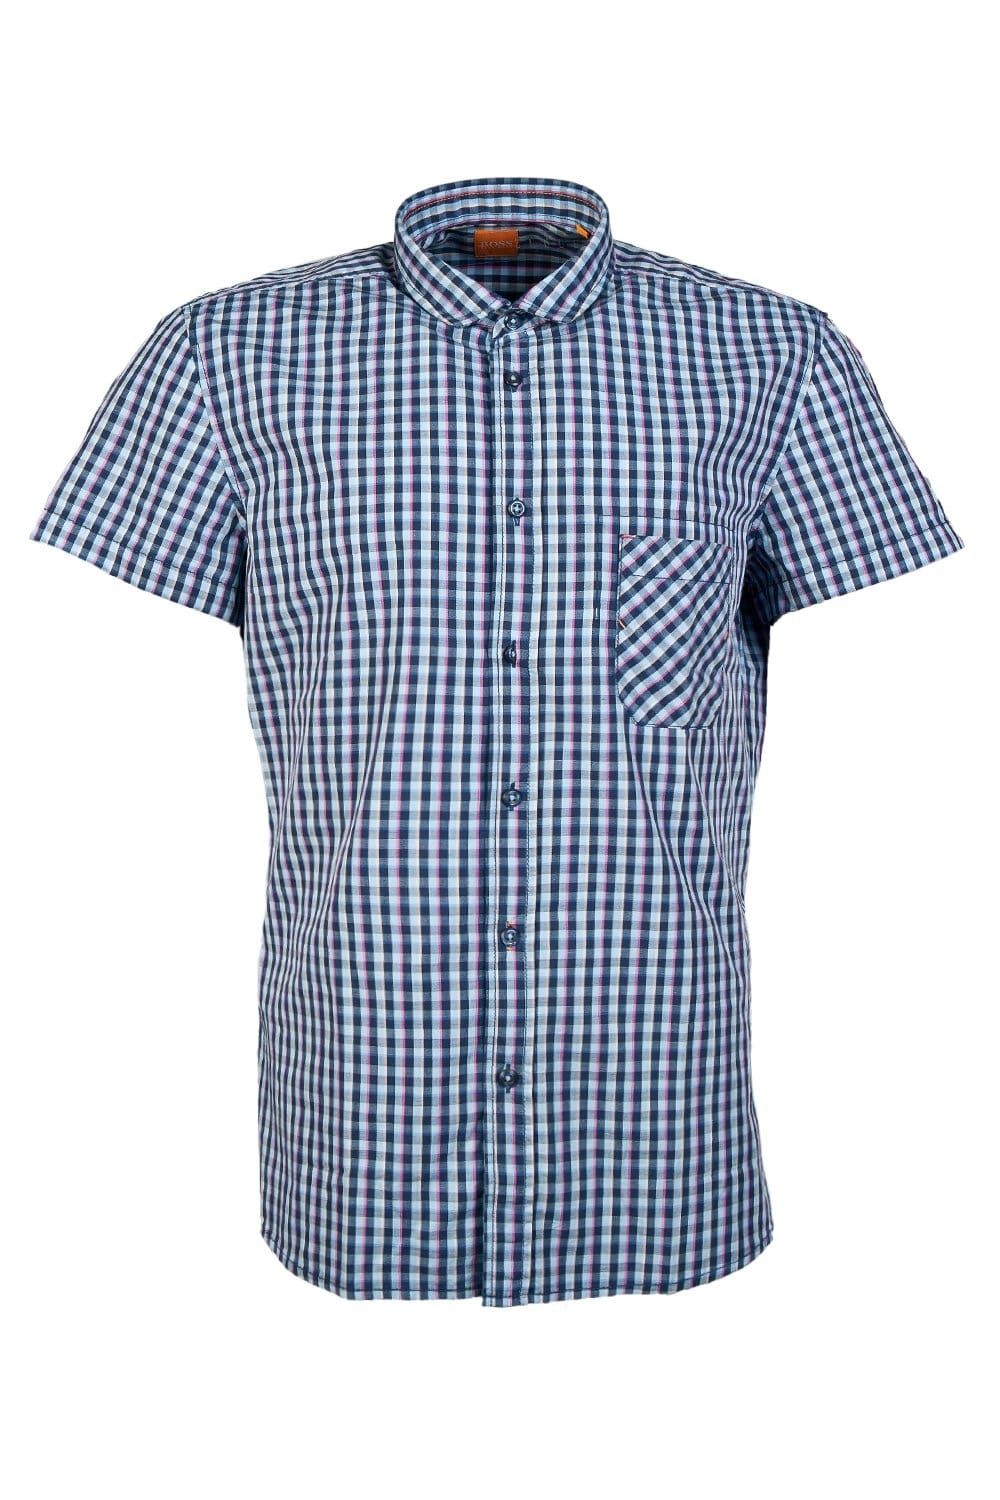 Hugo boss orange casual checked shirt in blue and lilac for Hugo boss dress shirts